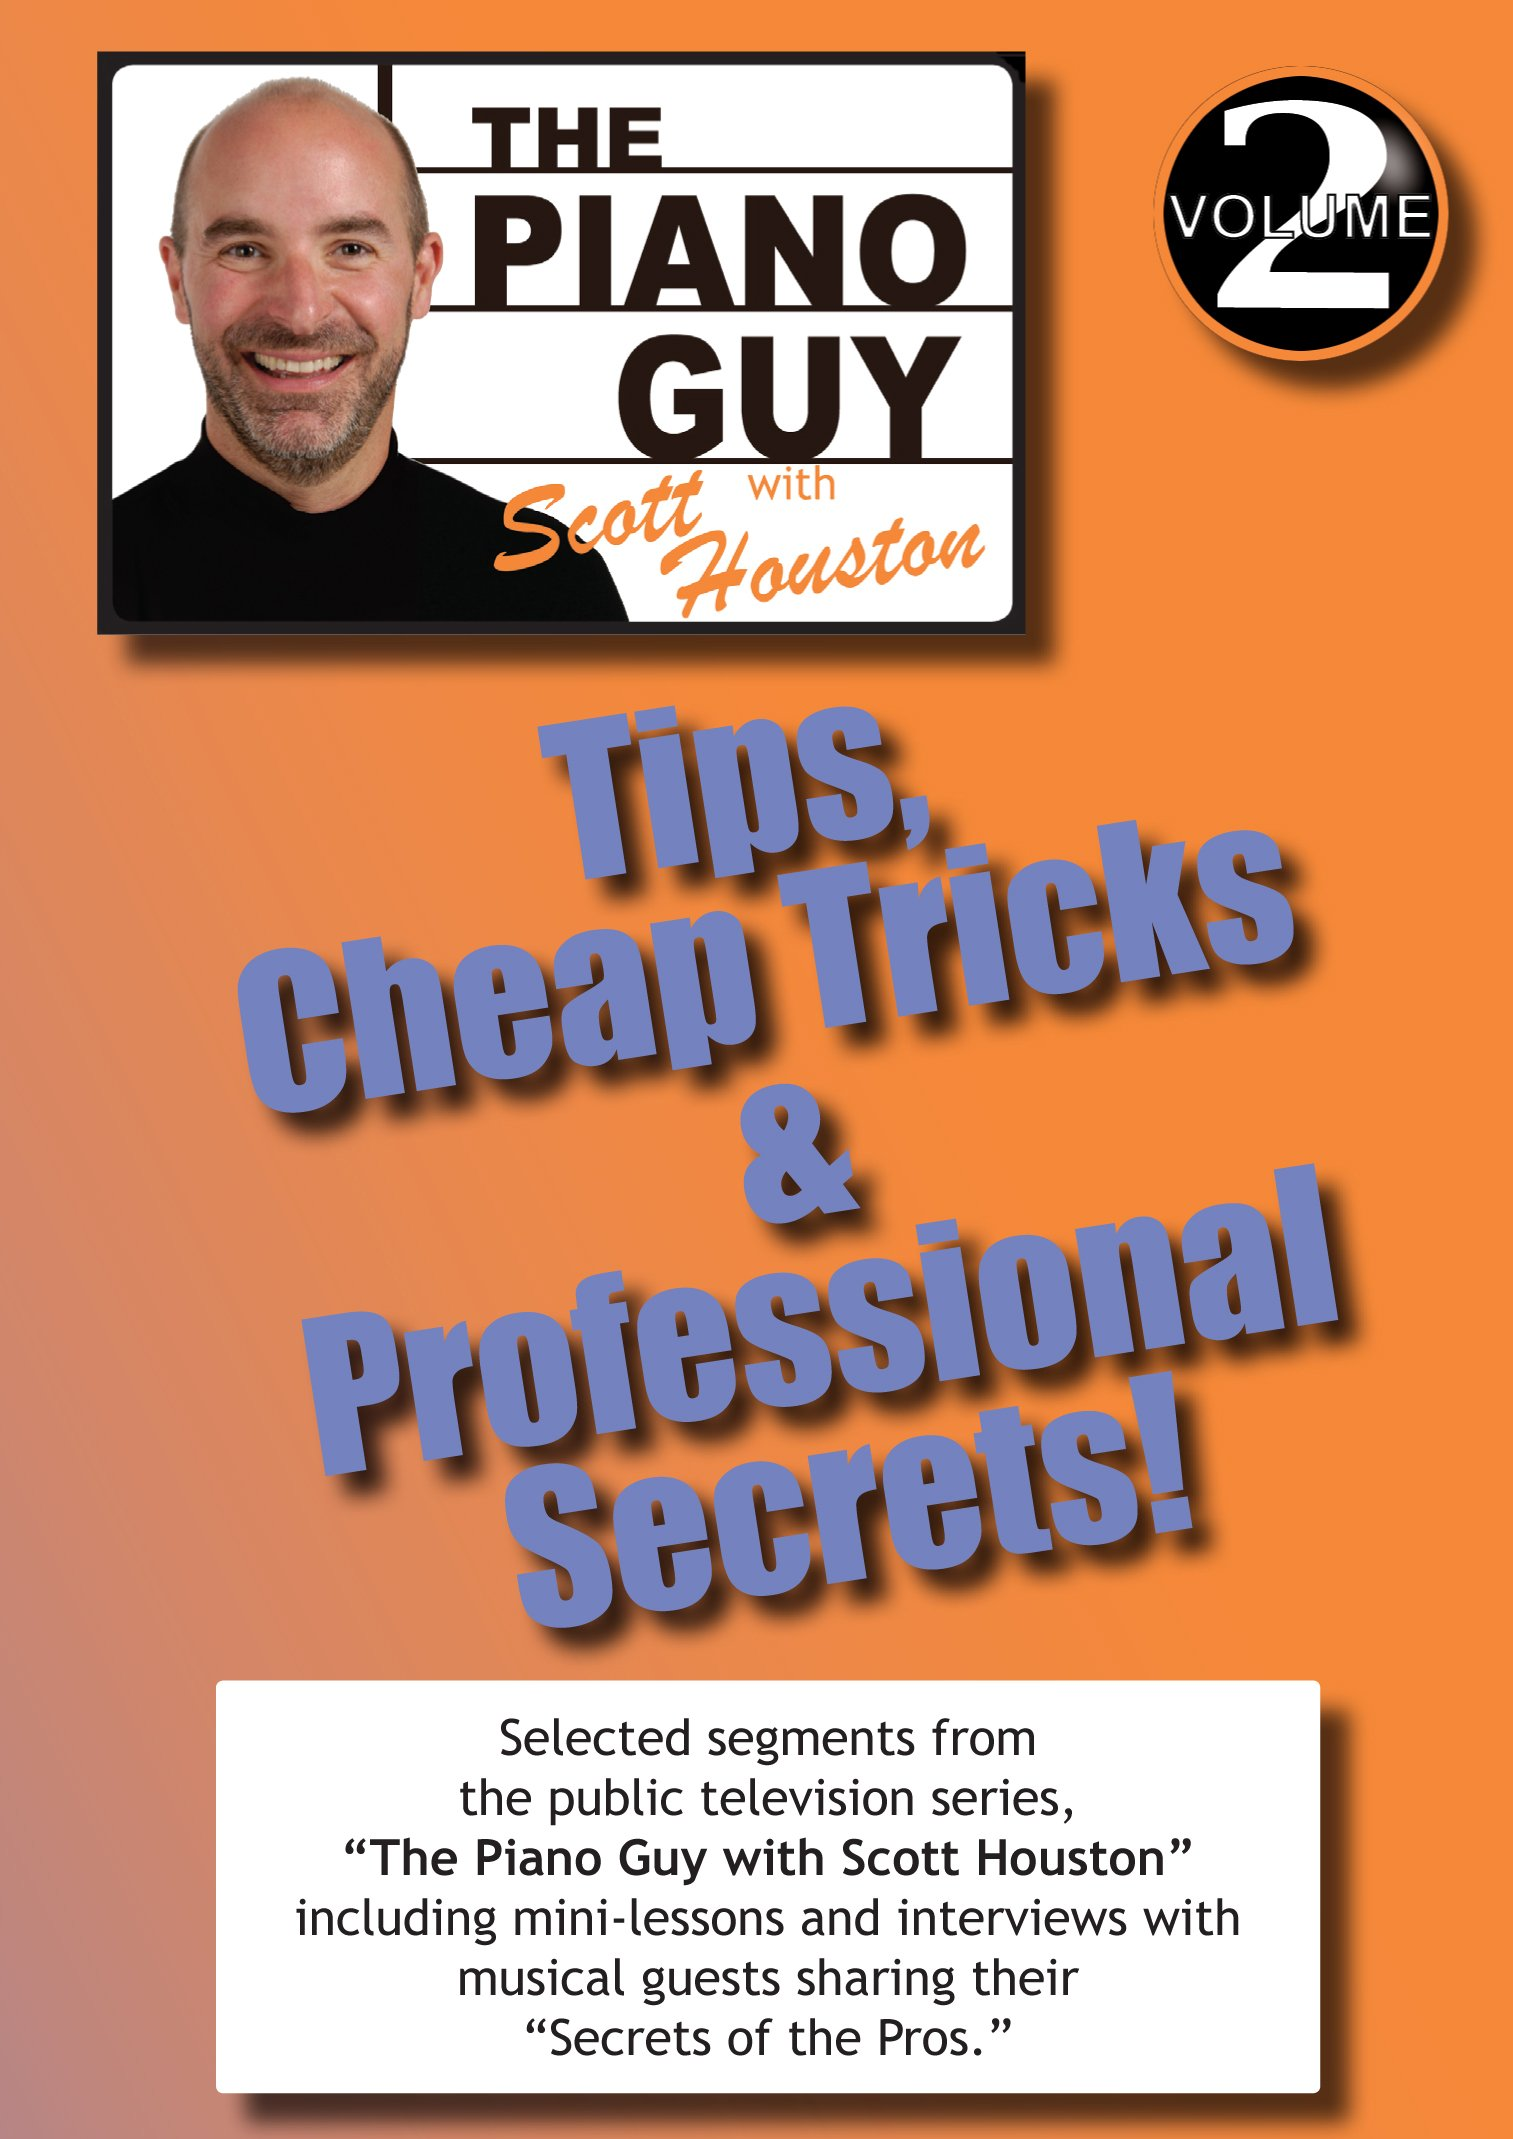 The Piano Guy, Vol. 2 Tips: Cheap Tricks & Professional Secrets! by Mills/James productions